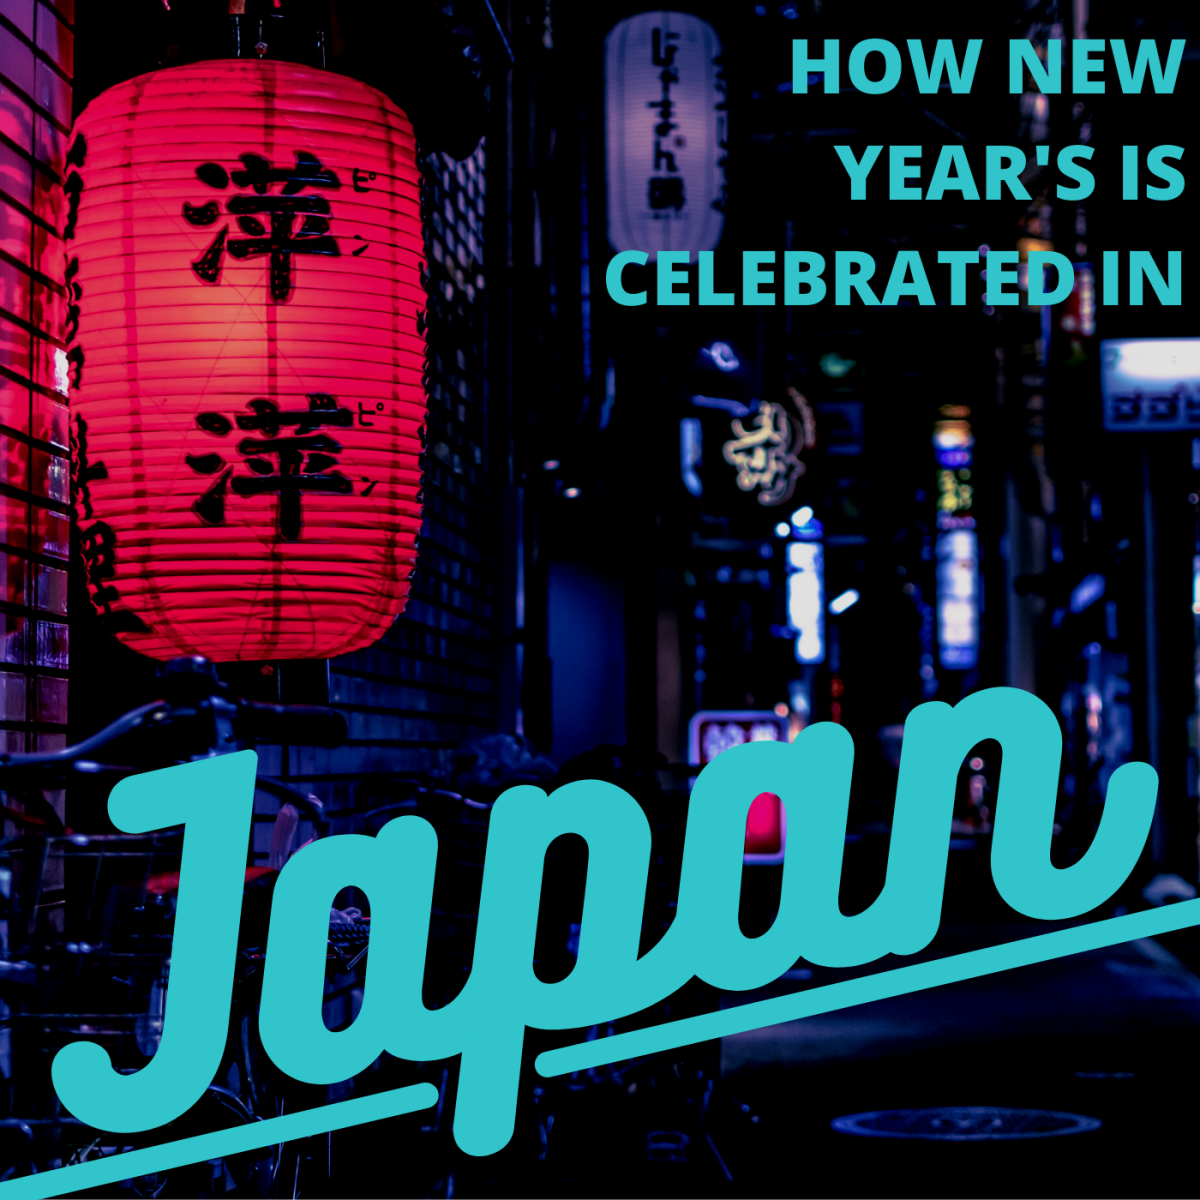 13 Things You Didn't Know About New Year's in Japan